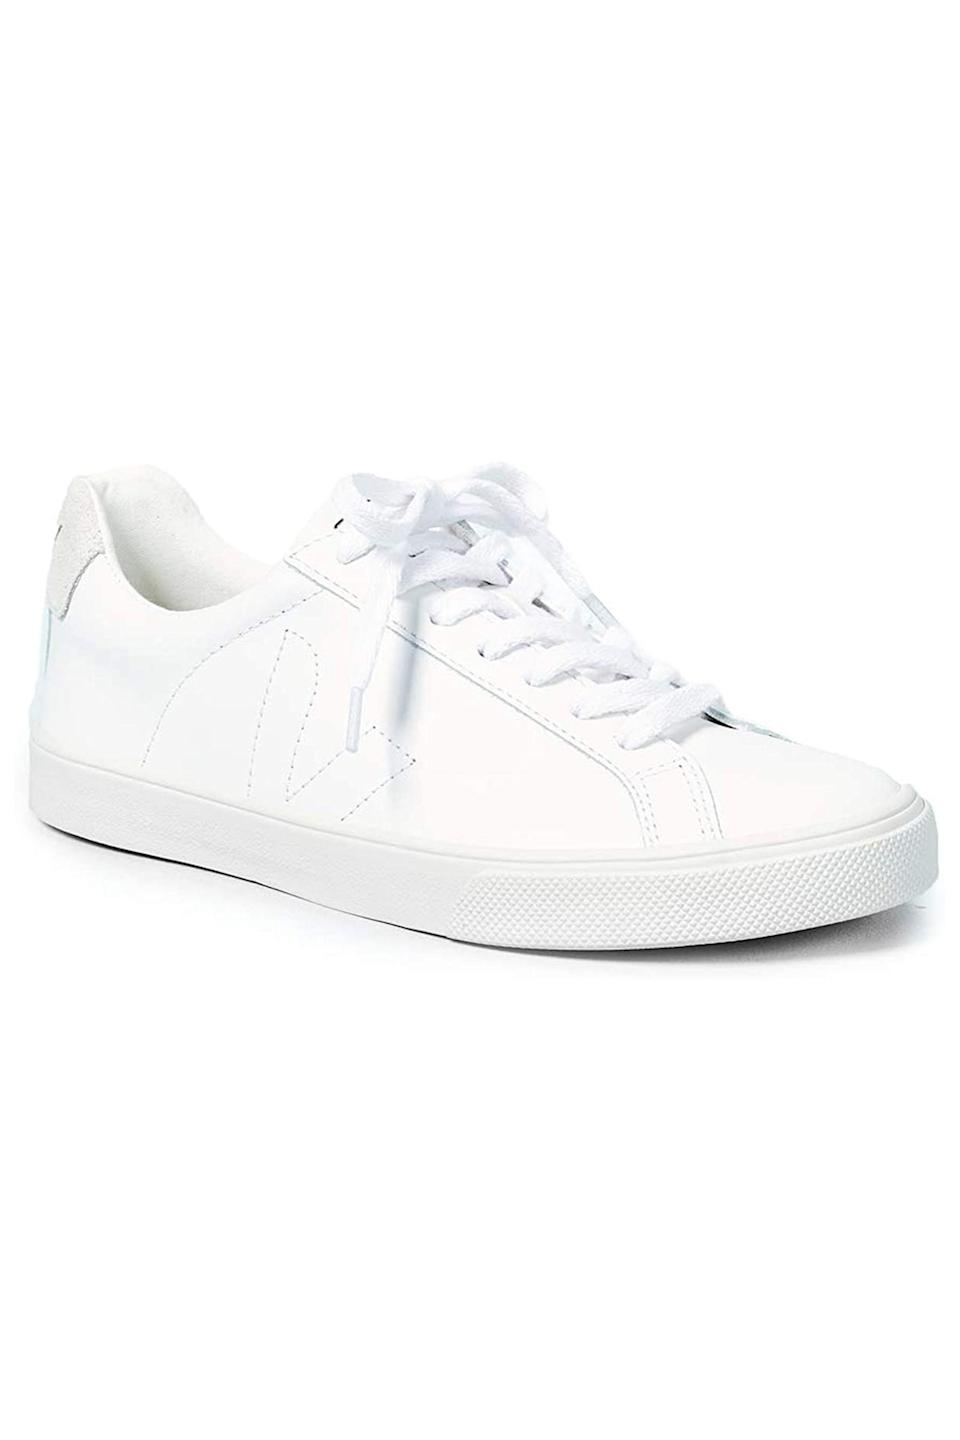 """<p><strong>Veja</strong></p><p>amazon.com</p><p><strong>$120.00</strong></p><p><a href=""""https://www.amazon.com/dp/B00I8PI4O8?tag=syn-yahoo-20&ascsubtag=%5Bartid%7C10063.g.34824549%5Bsrc%7Cyahoo-us"""" rel=""""nofollow noopener"""" target=""""_blank"""" data-ylk=""""slk:Shop Now"""" class=""""link rapid-noclick-resp"""">Shop Now</a></p><p>White leather sneakers defined the last decade in fashion and aren't going away anytime soon. Gift her a pair from Veja, the sustainable brand she's been trying to track down in her size these last few months.</p>"""